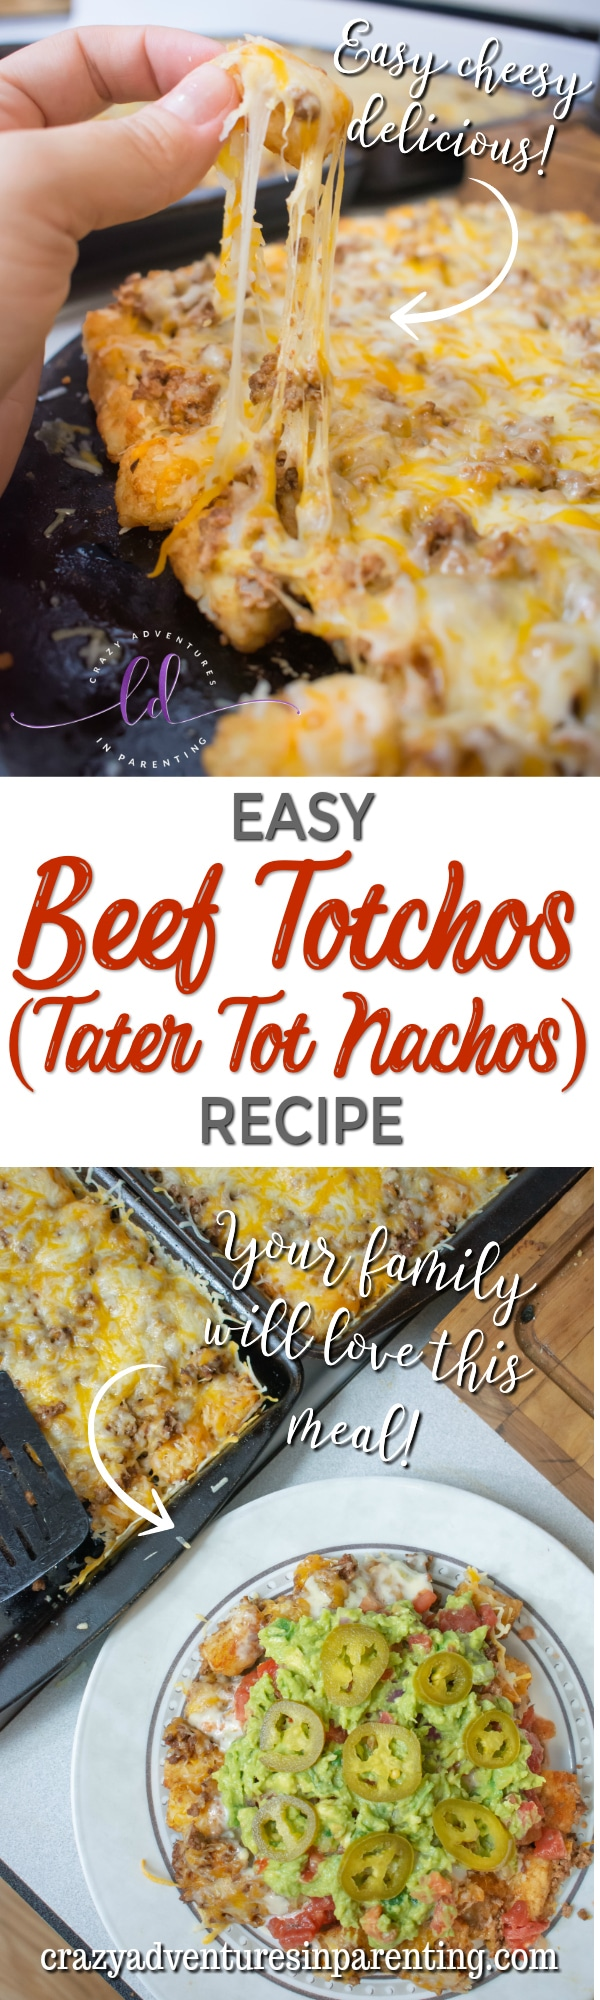 Easy Beef Totchos Tater Tot Nachos Recipe for Dinner